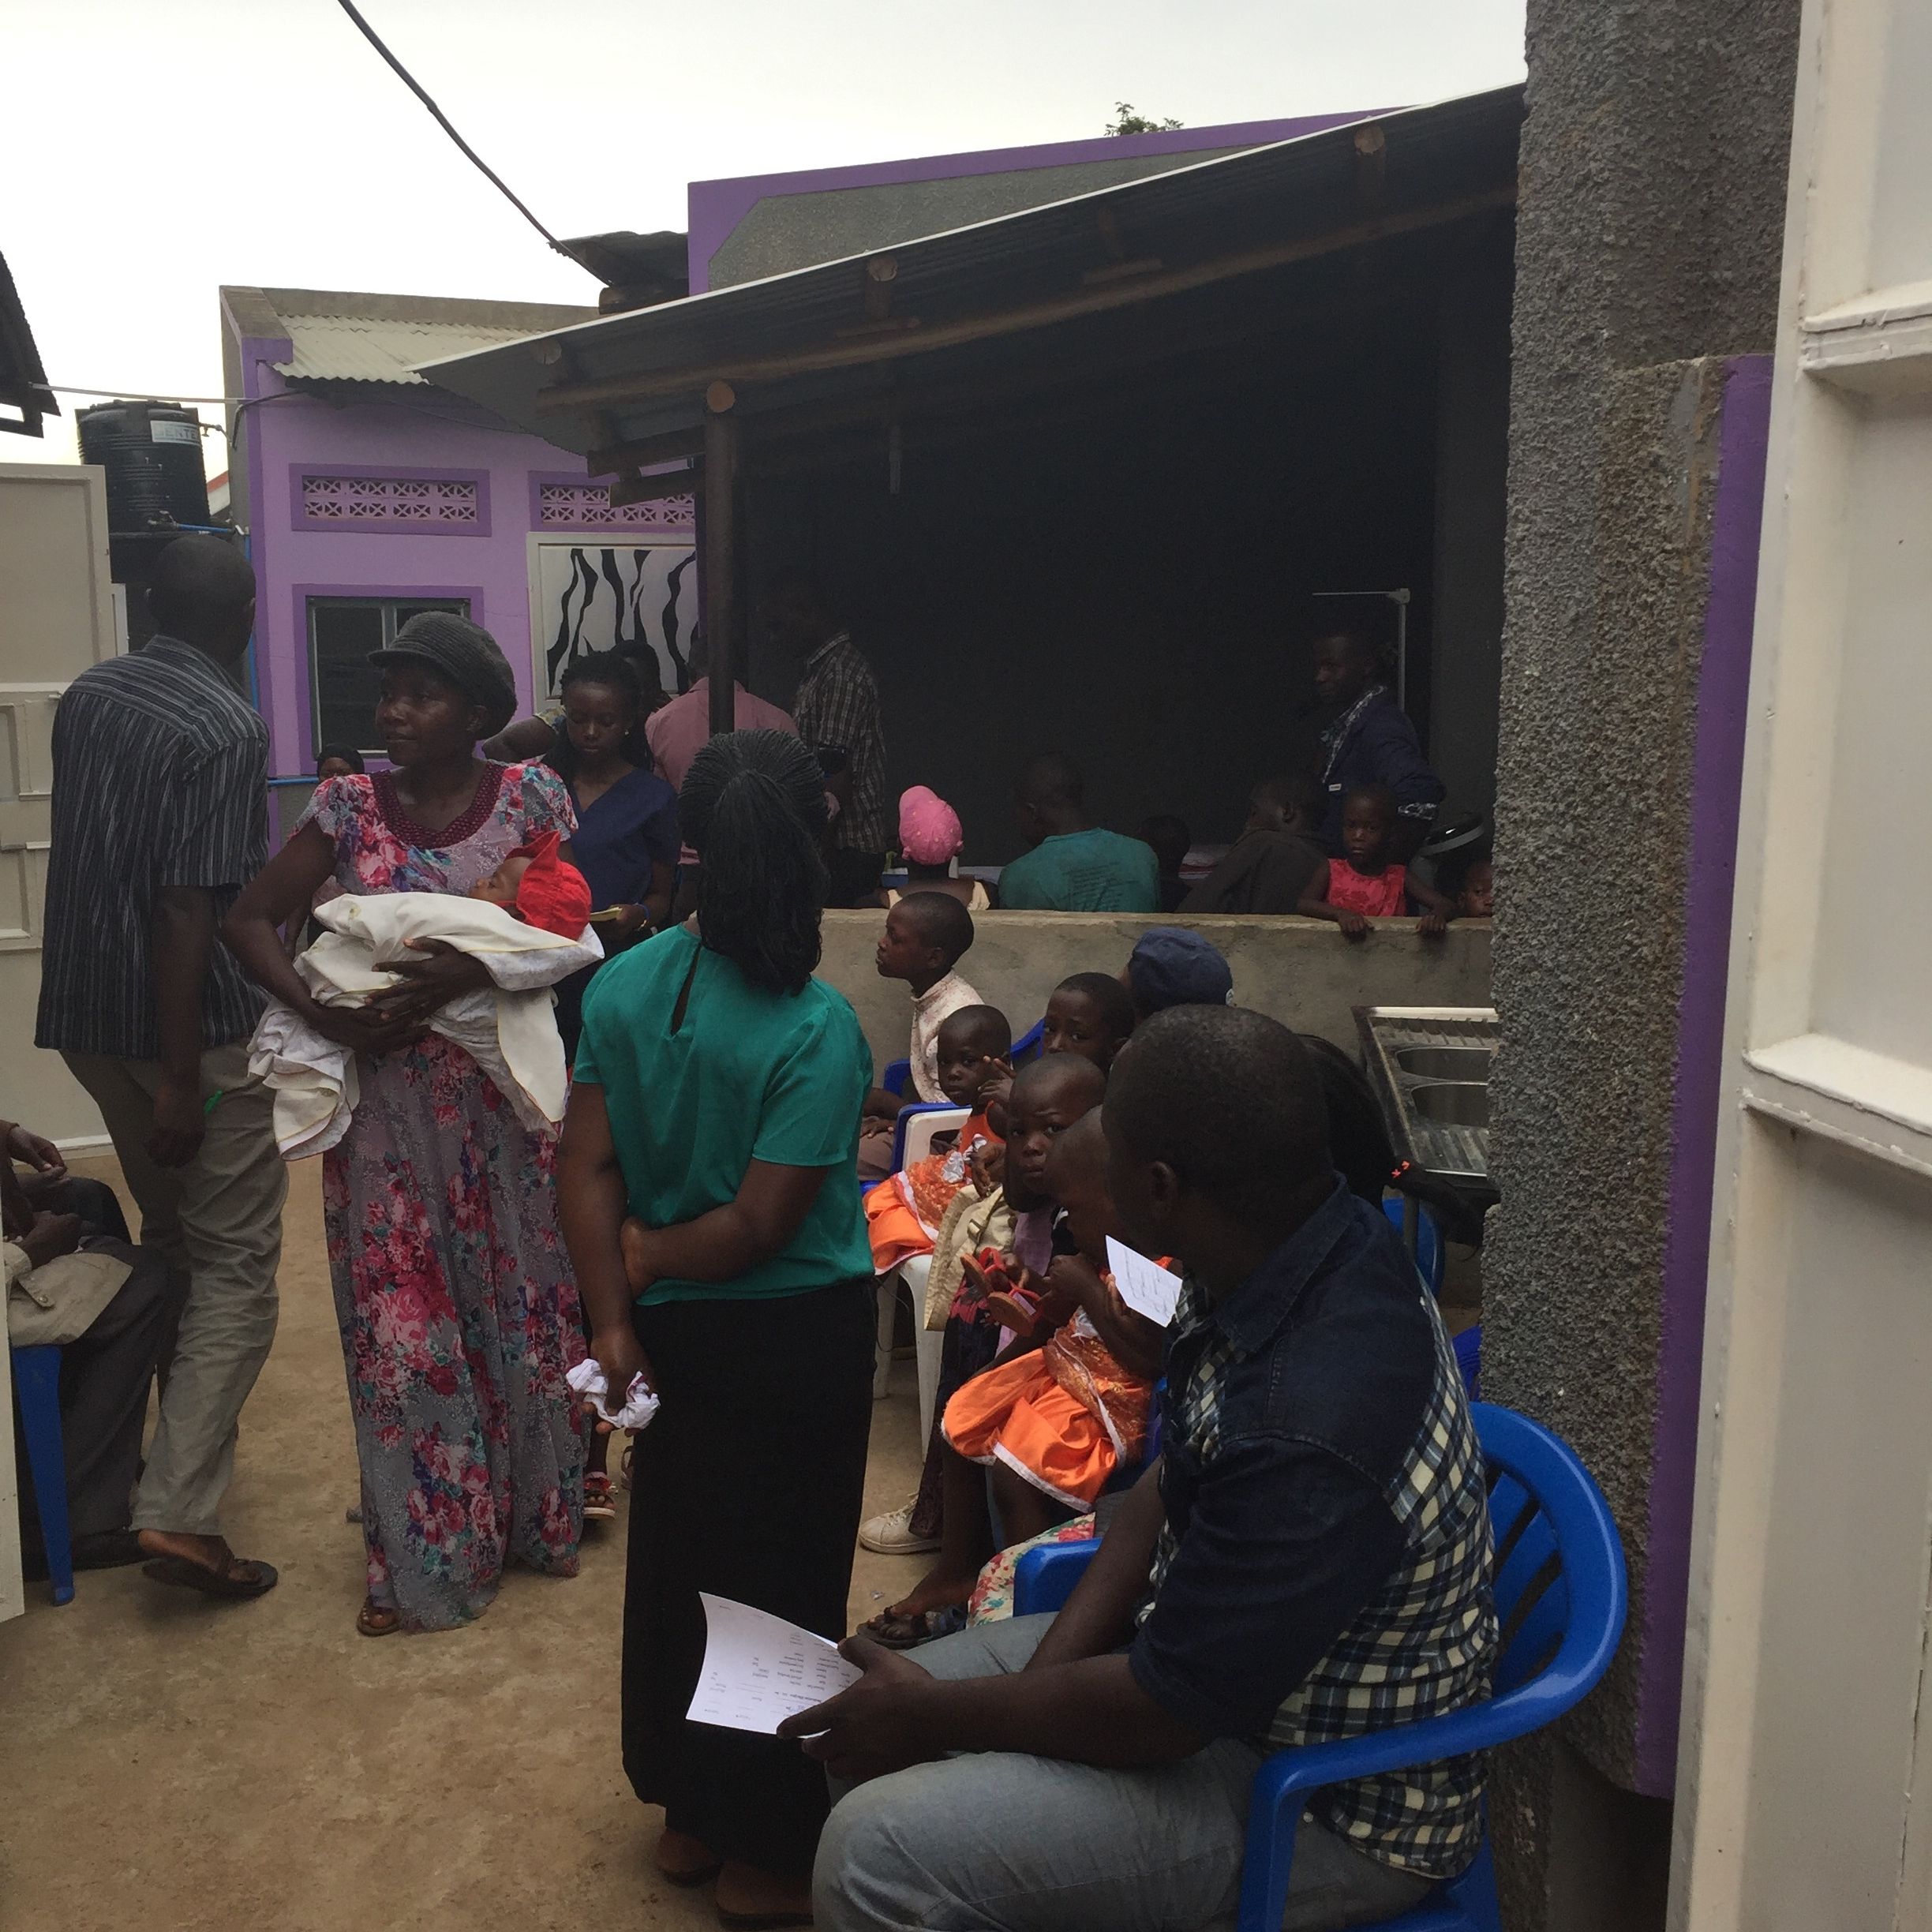 ...treated 1,600 people at the house of joy clinic -